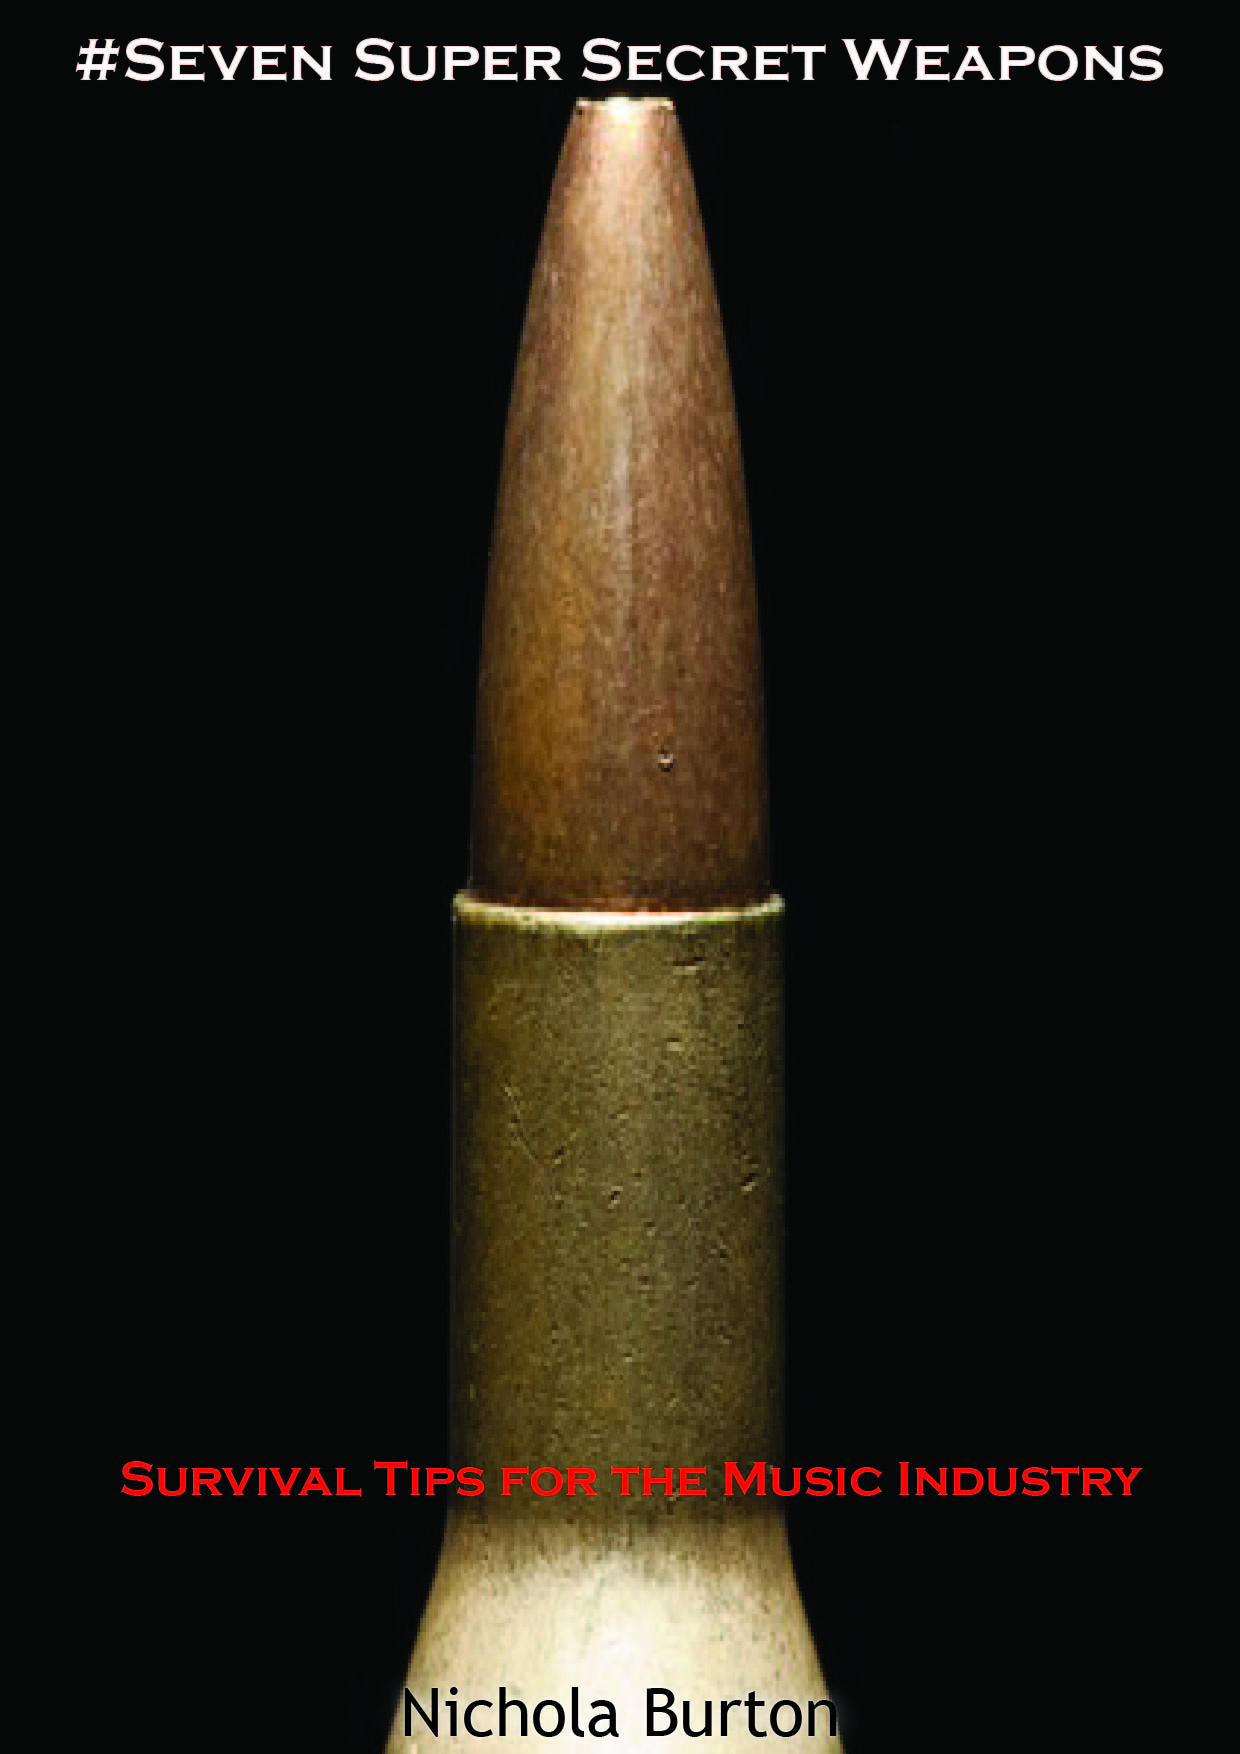 Survival Tips for the Music Industry